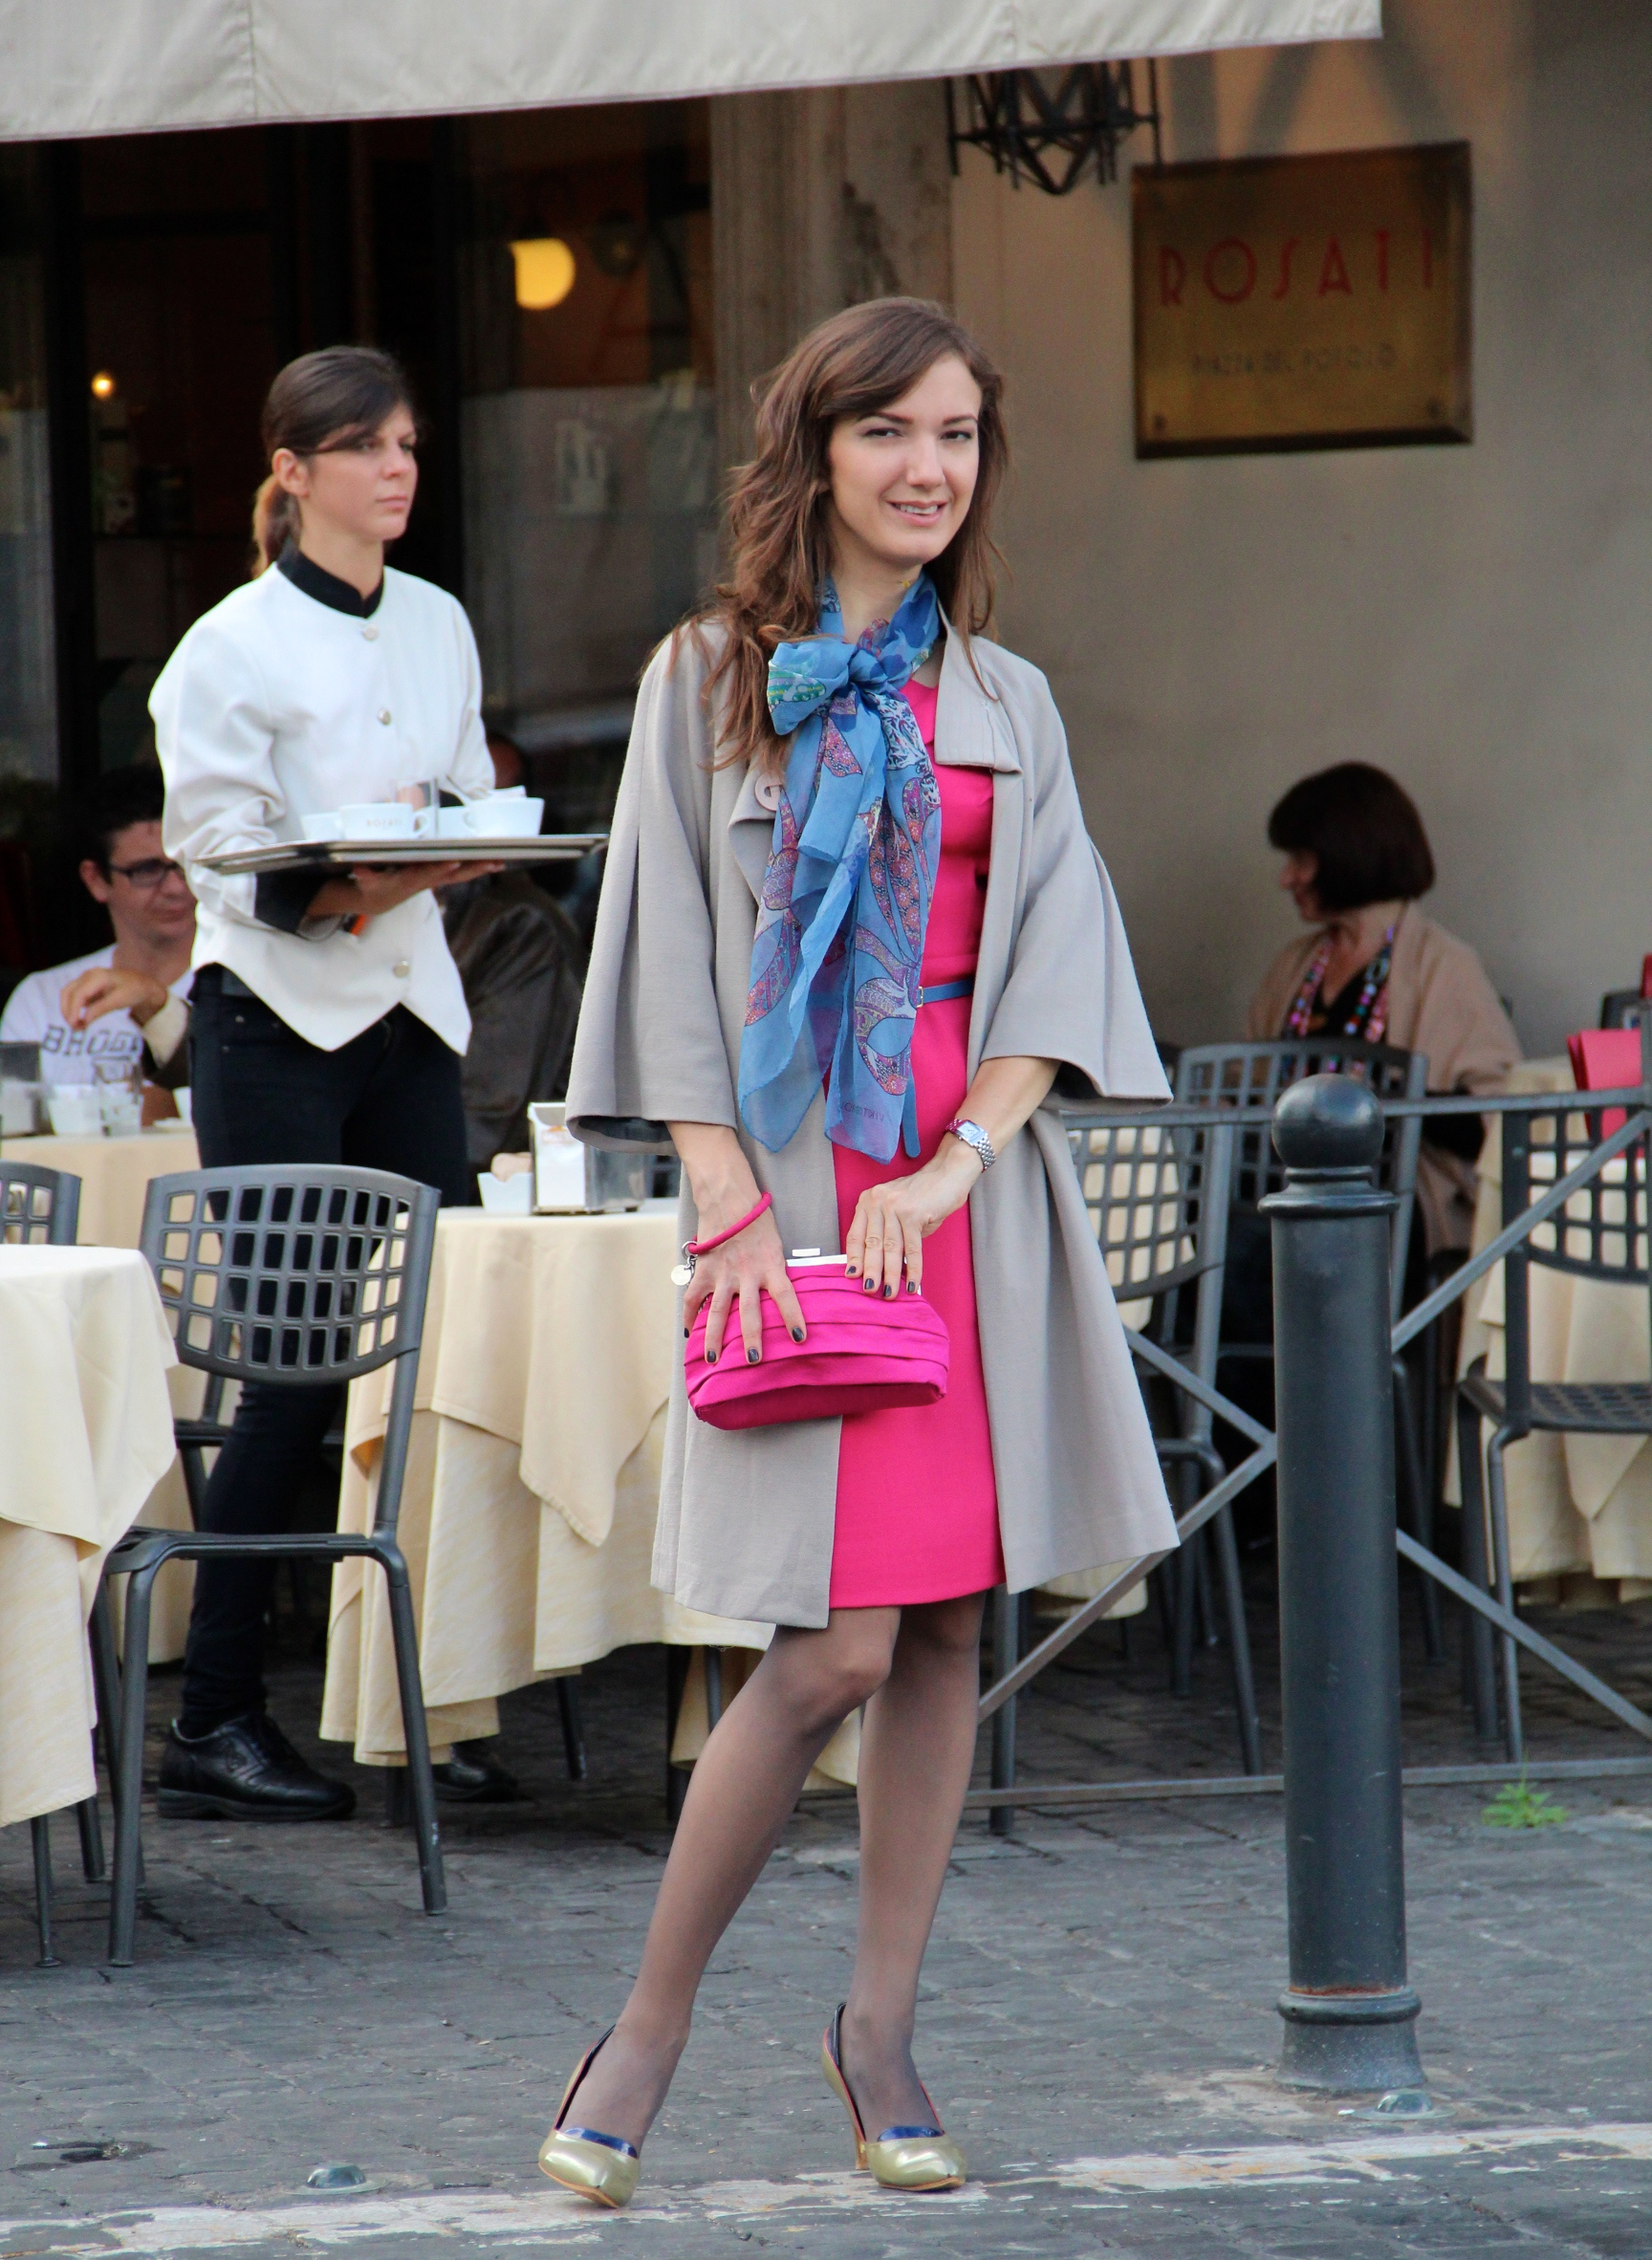 Rome Street Fashion Love Your Style